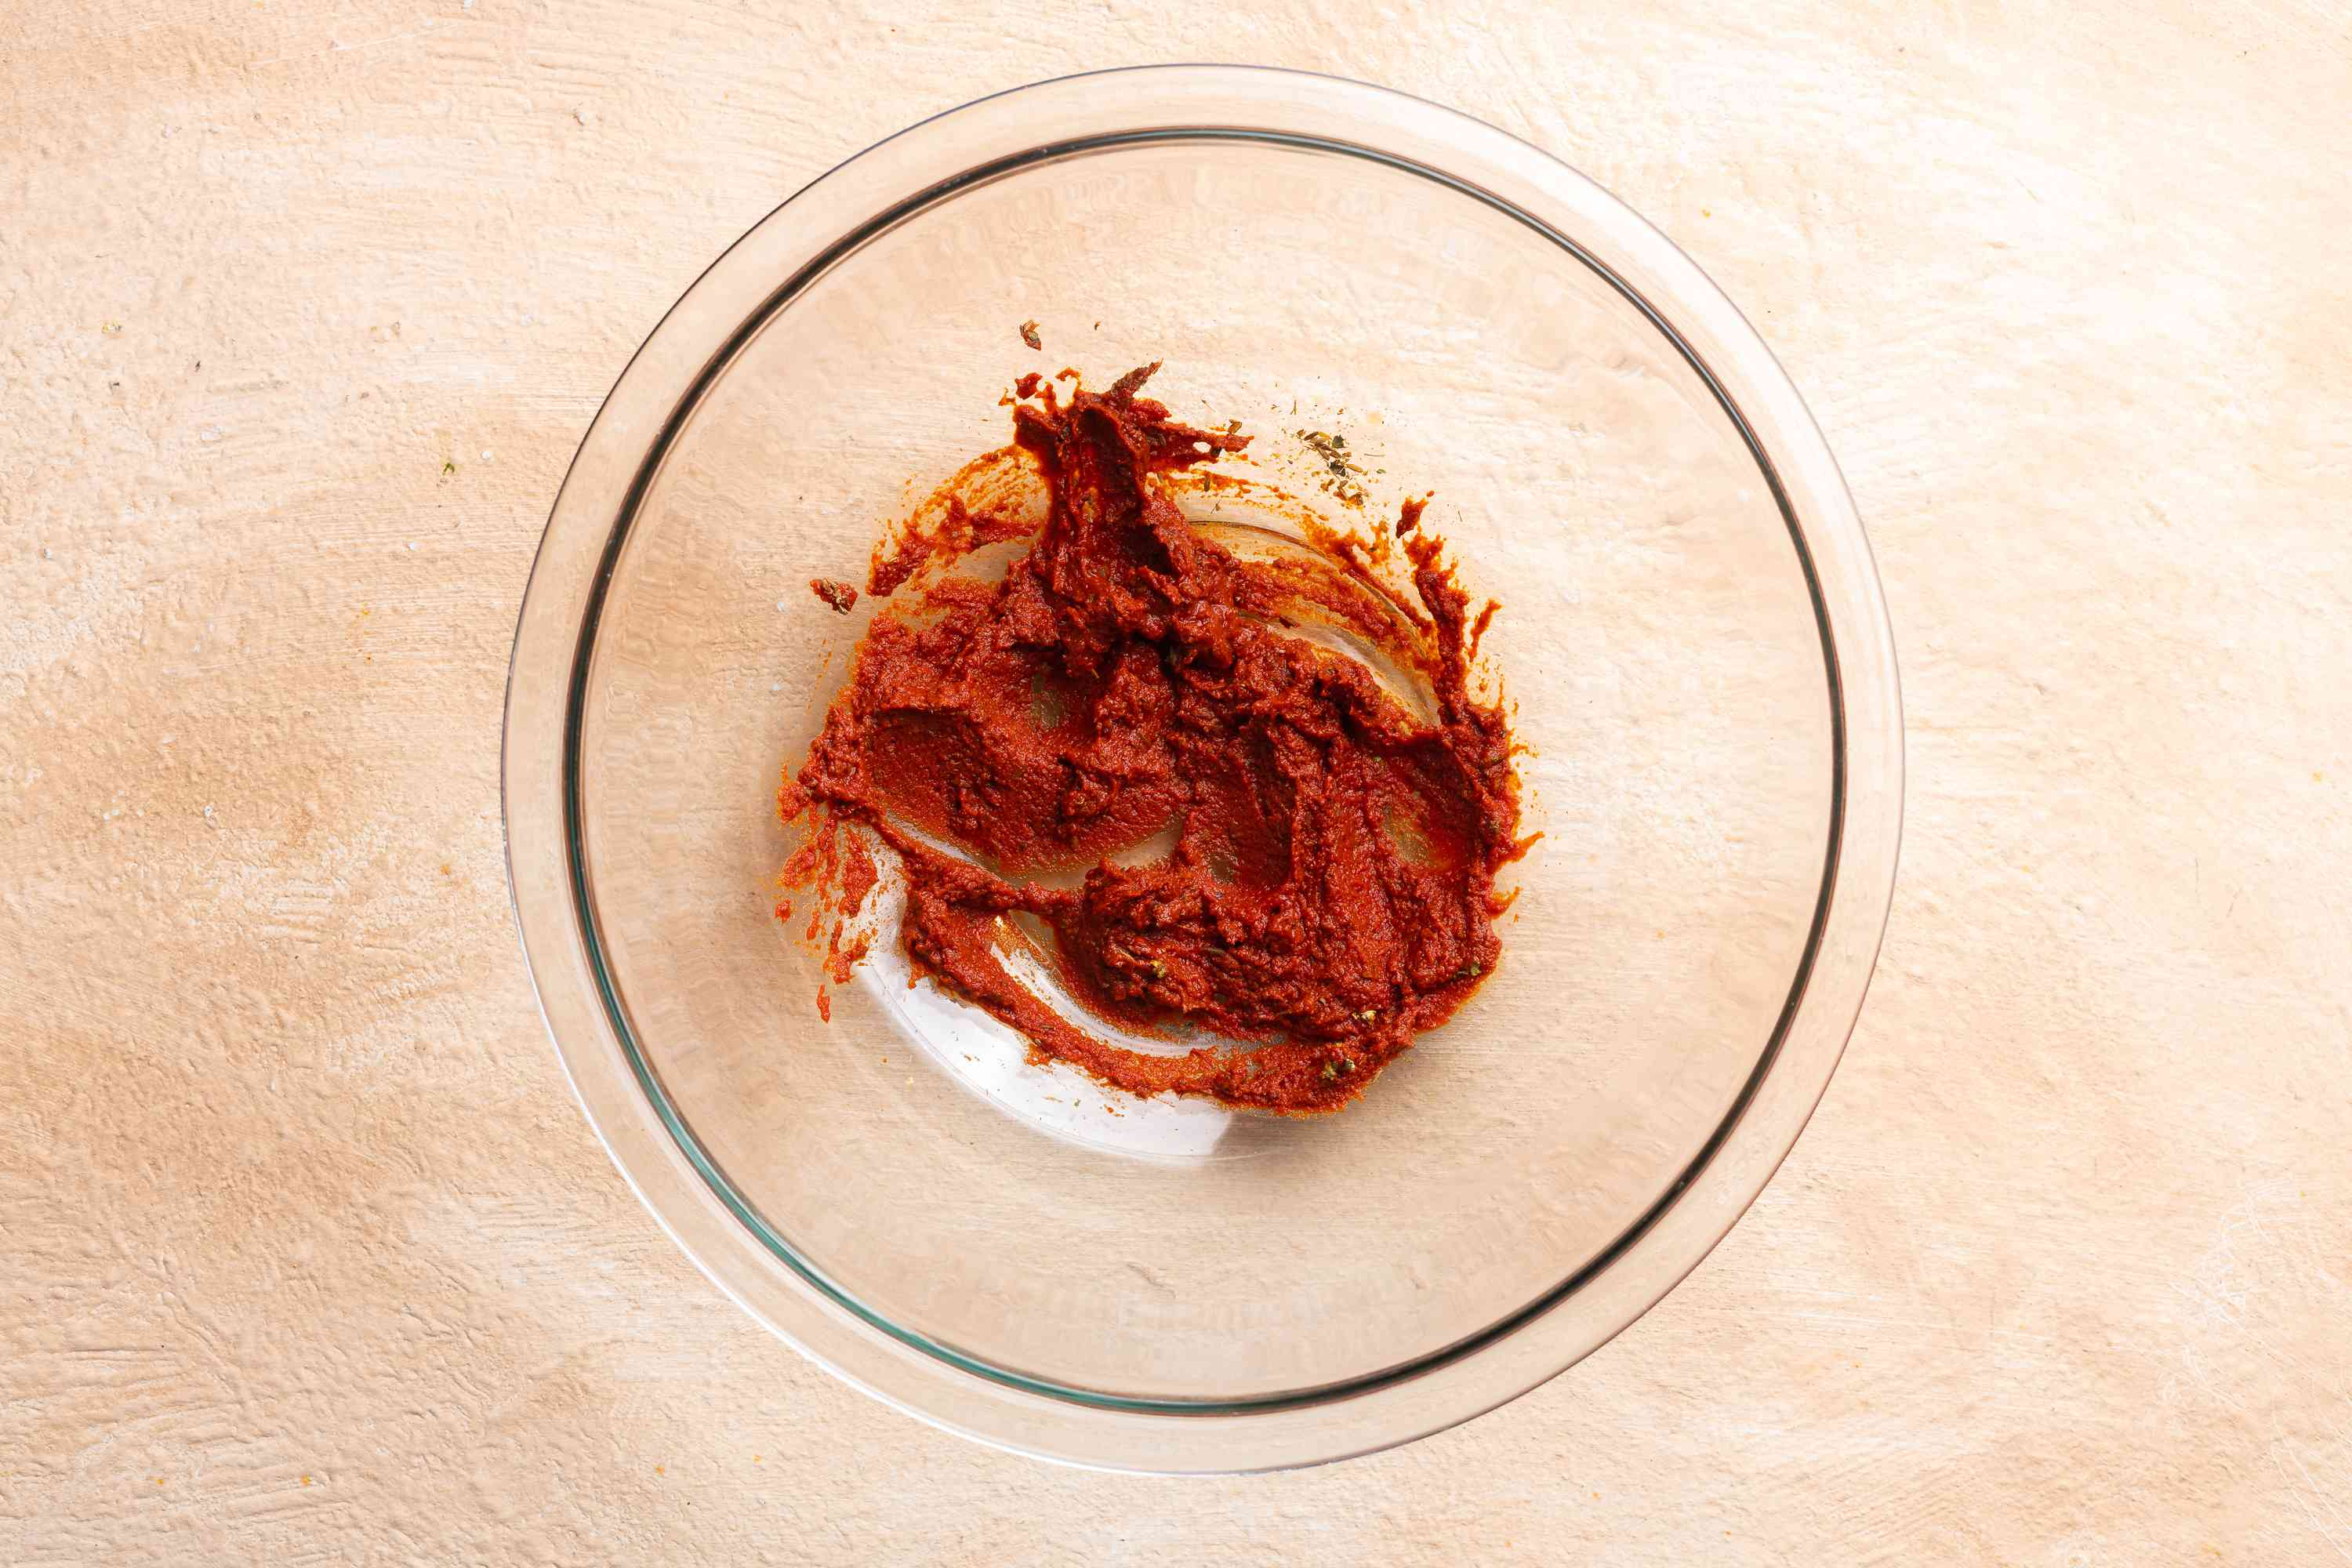 Place chipotle paste, ground cumin, oregano, cloves, and tomato paste in a large bowl